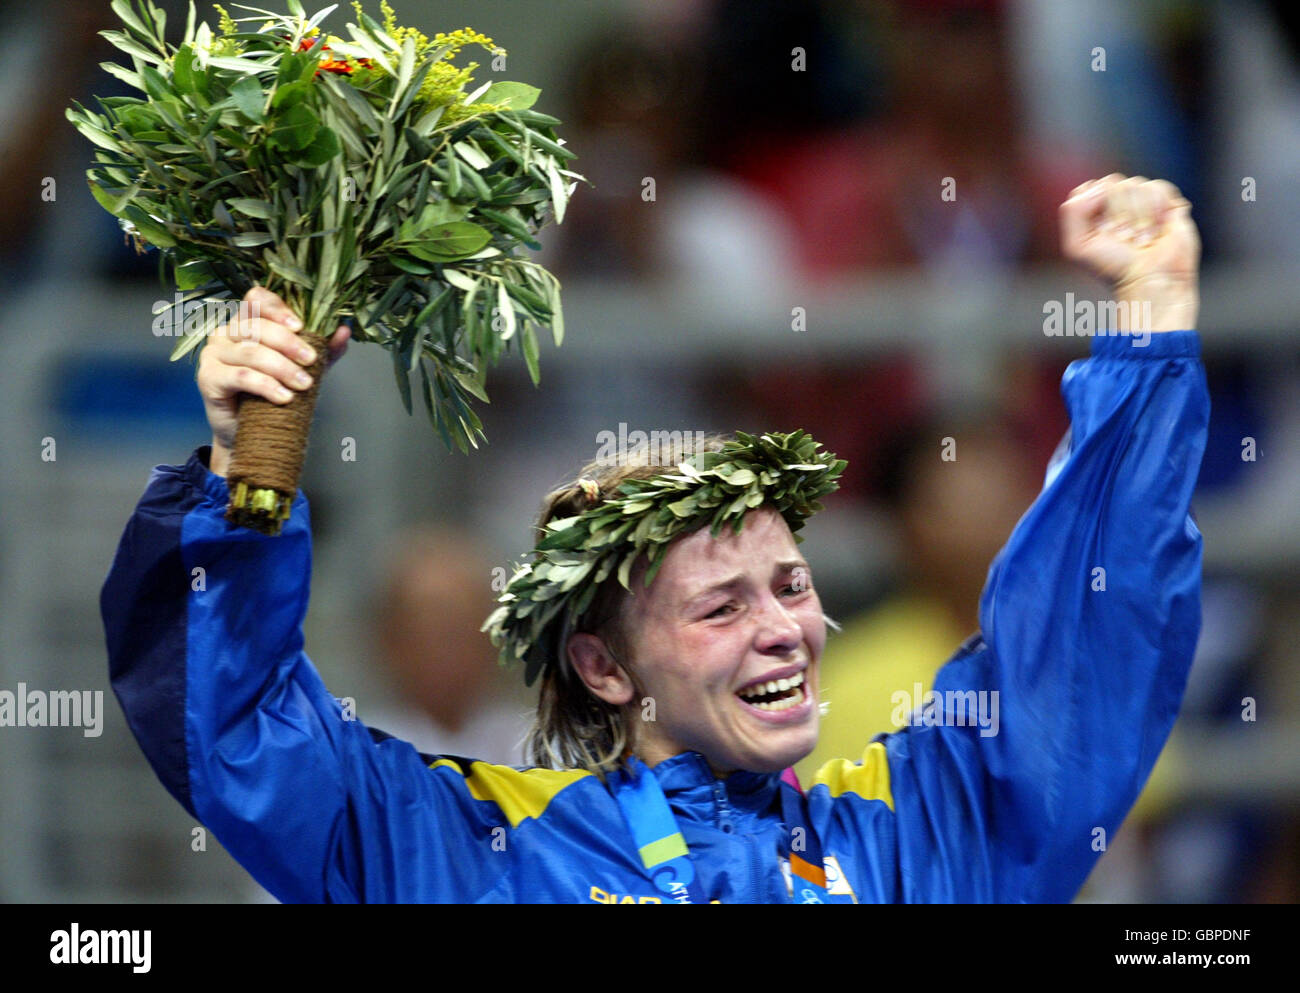 Wrestling - Athens Olympic Games 2004 - Women's 48KG - Final - Stock Image